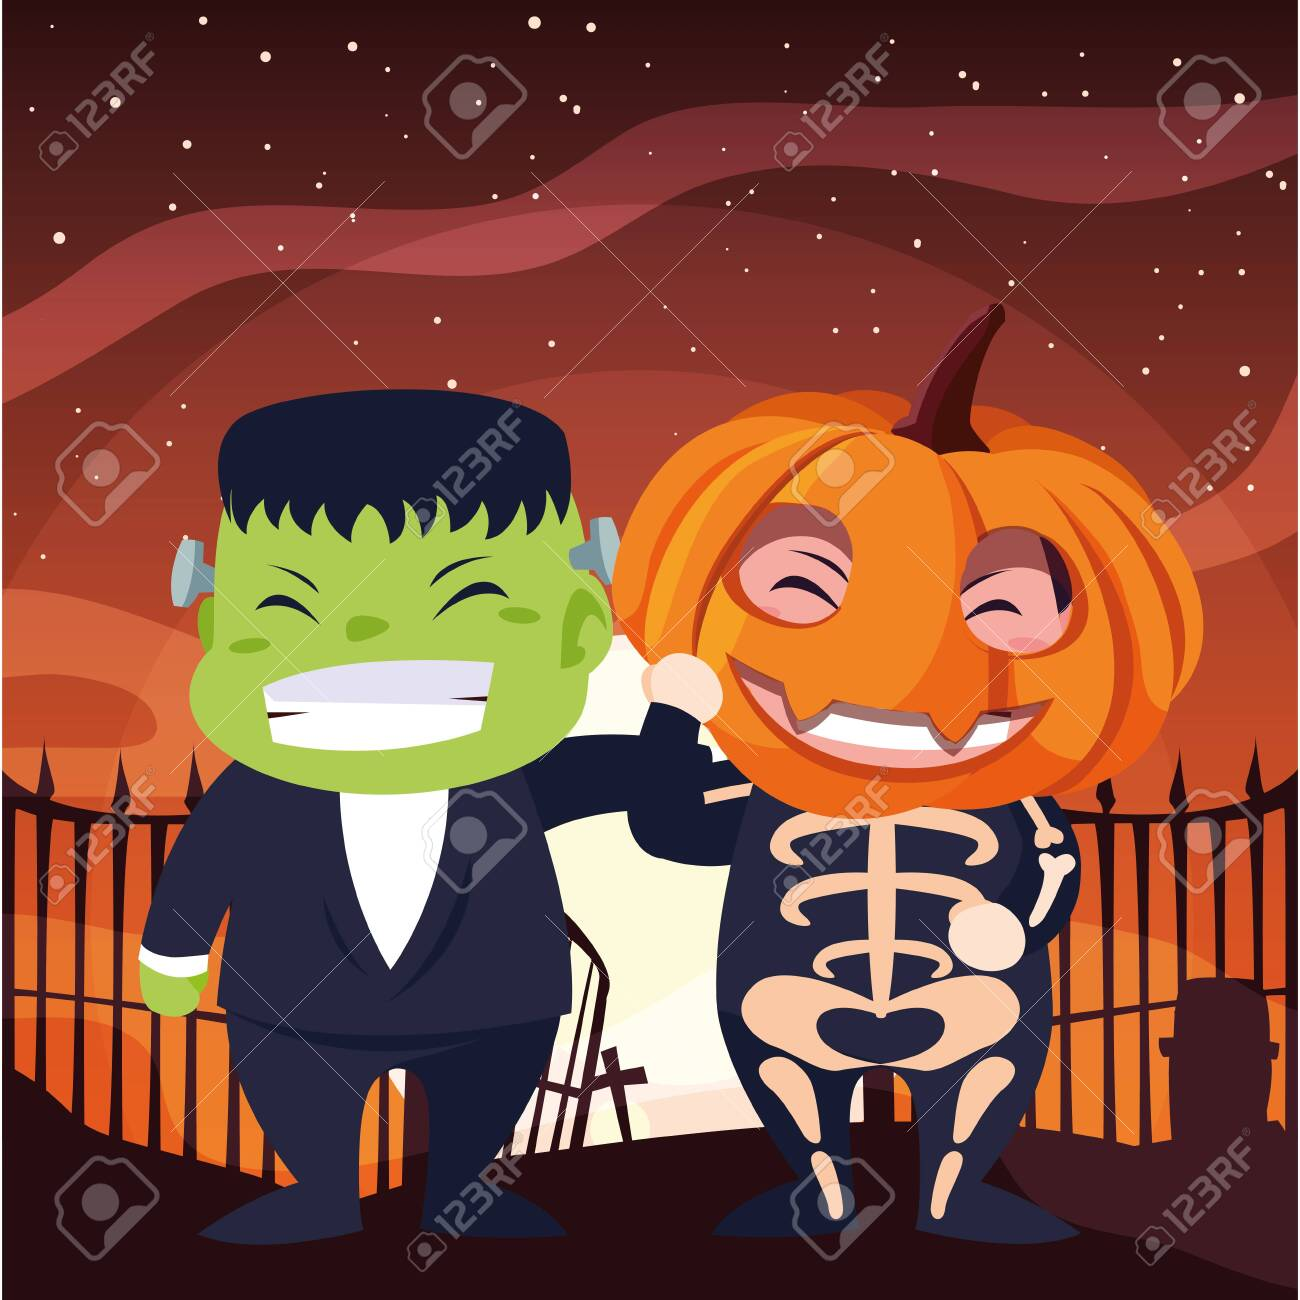 costumed children design, Halloween holiday horror scary celebration autumn dark and party theme Vector illustration - 153944170